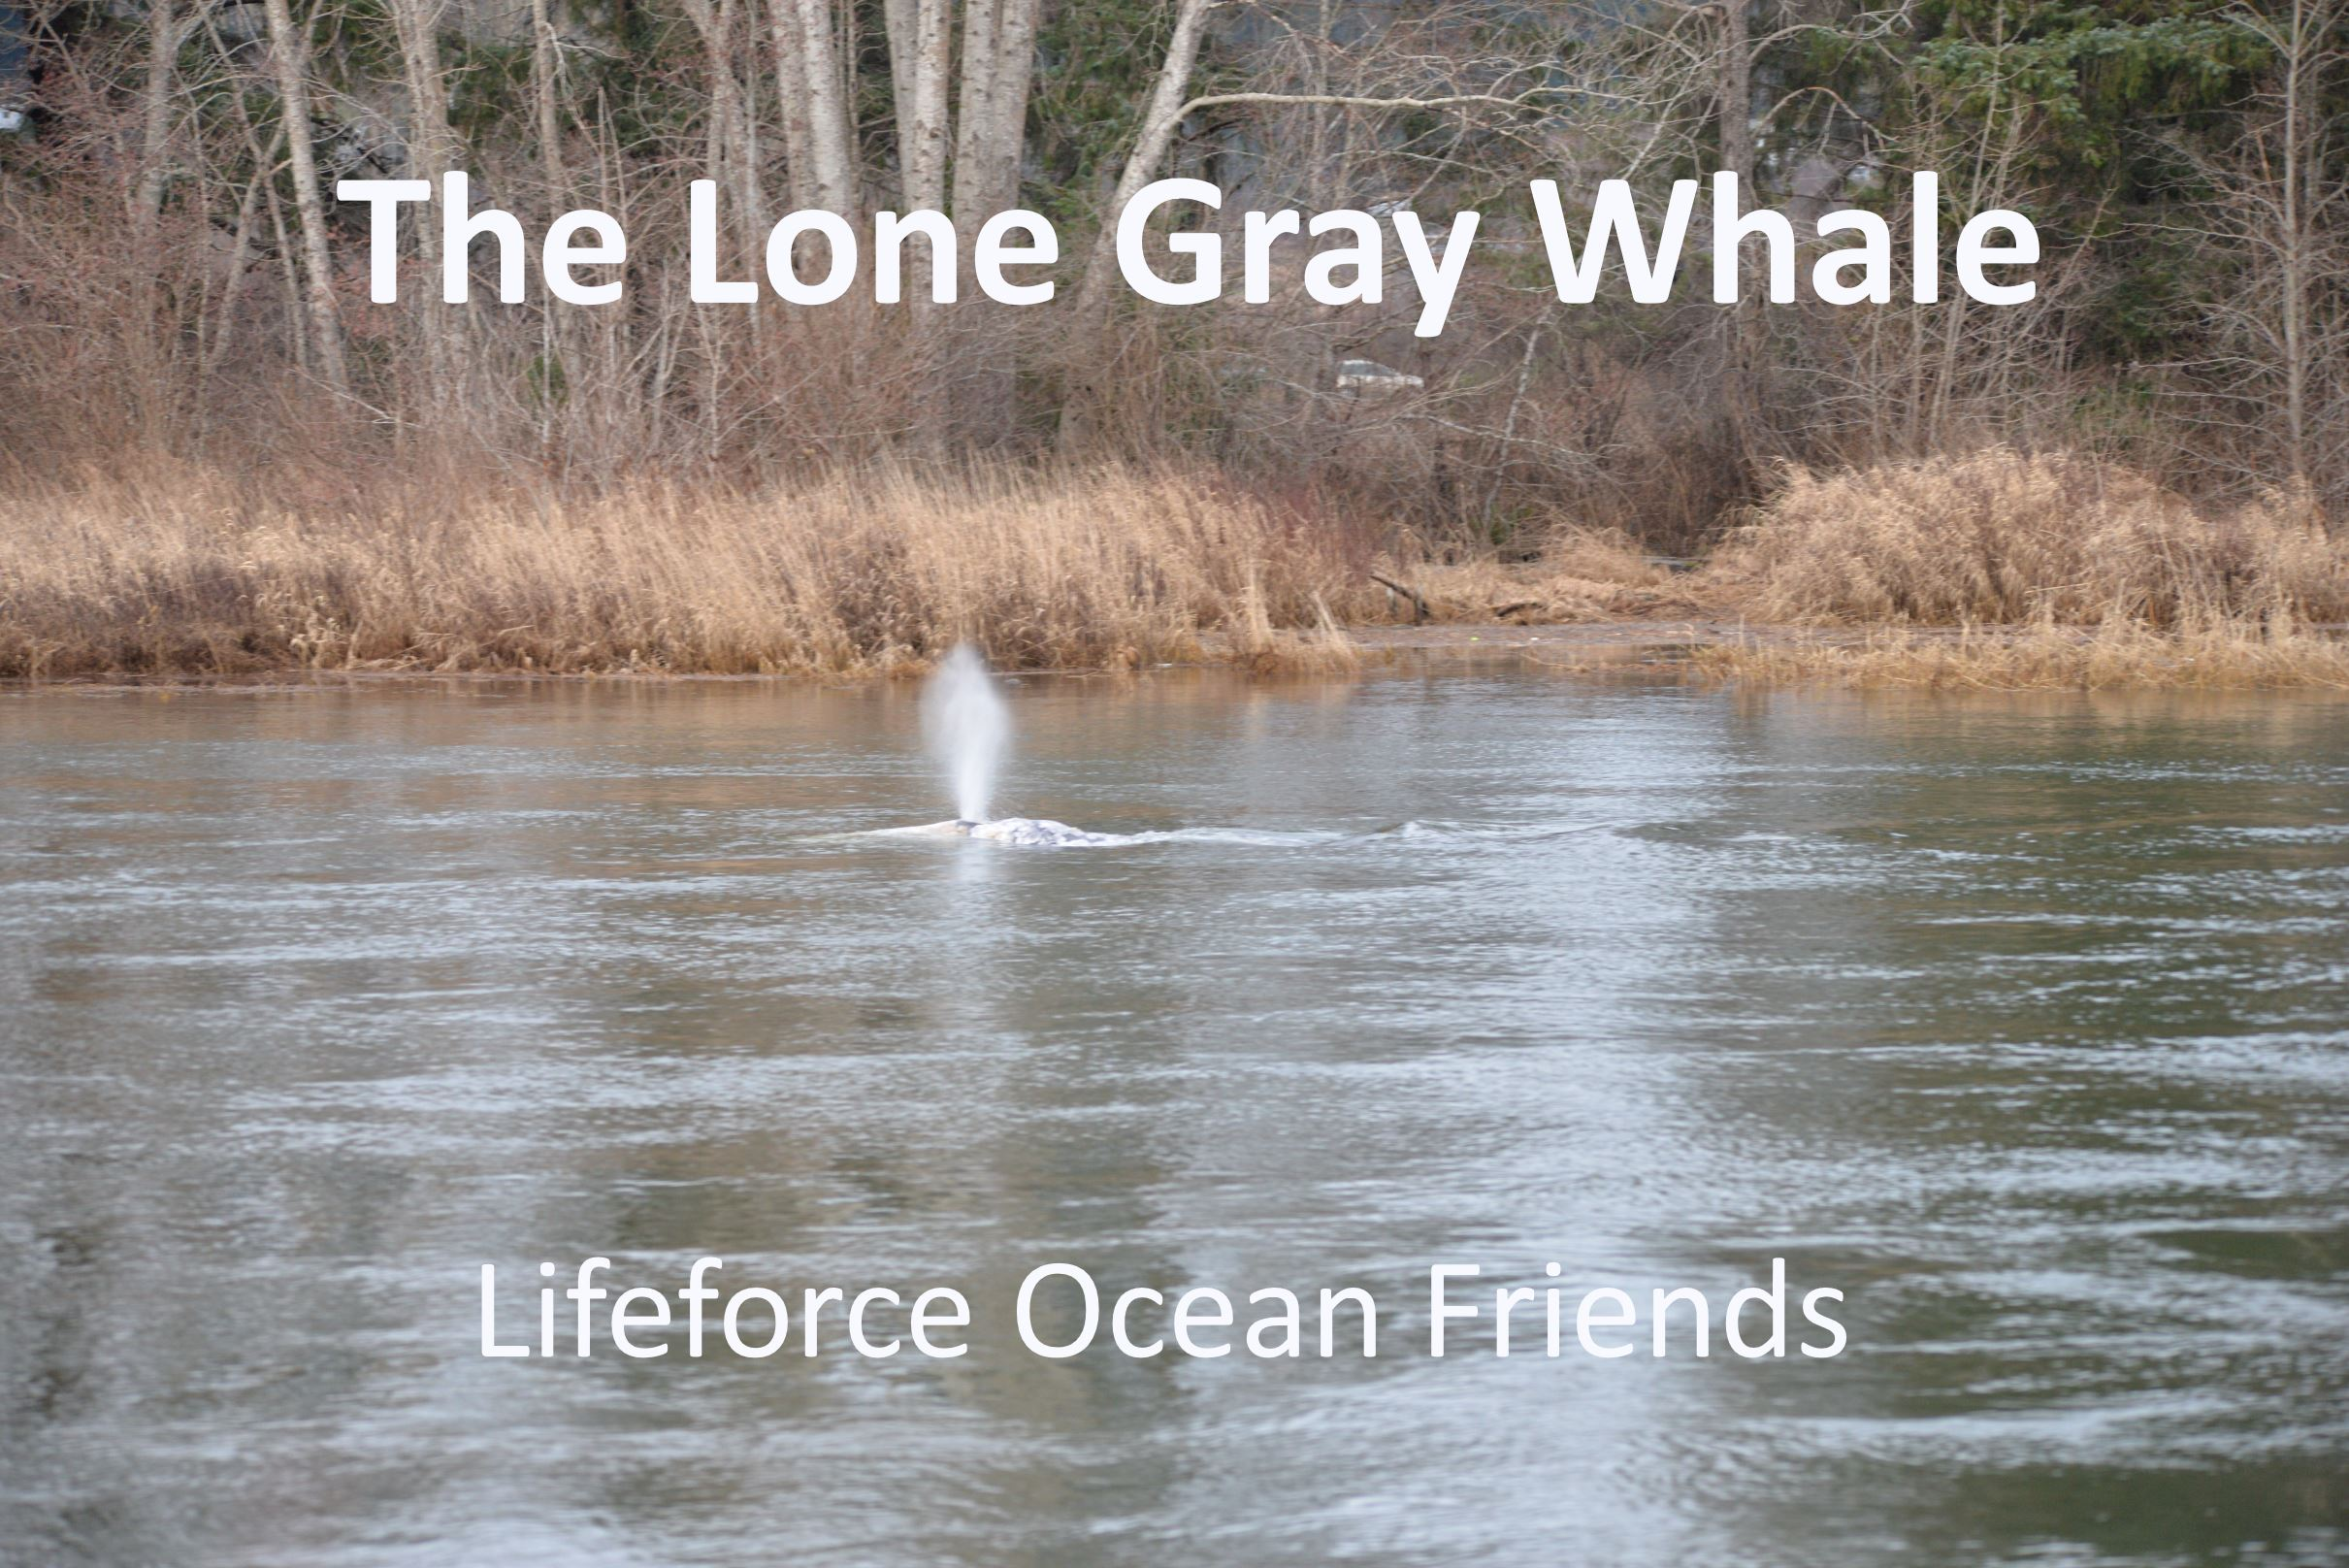 The Lone Gray Whale